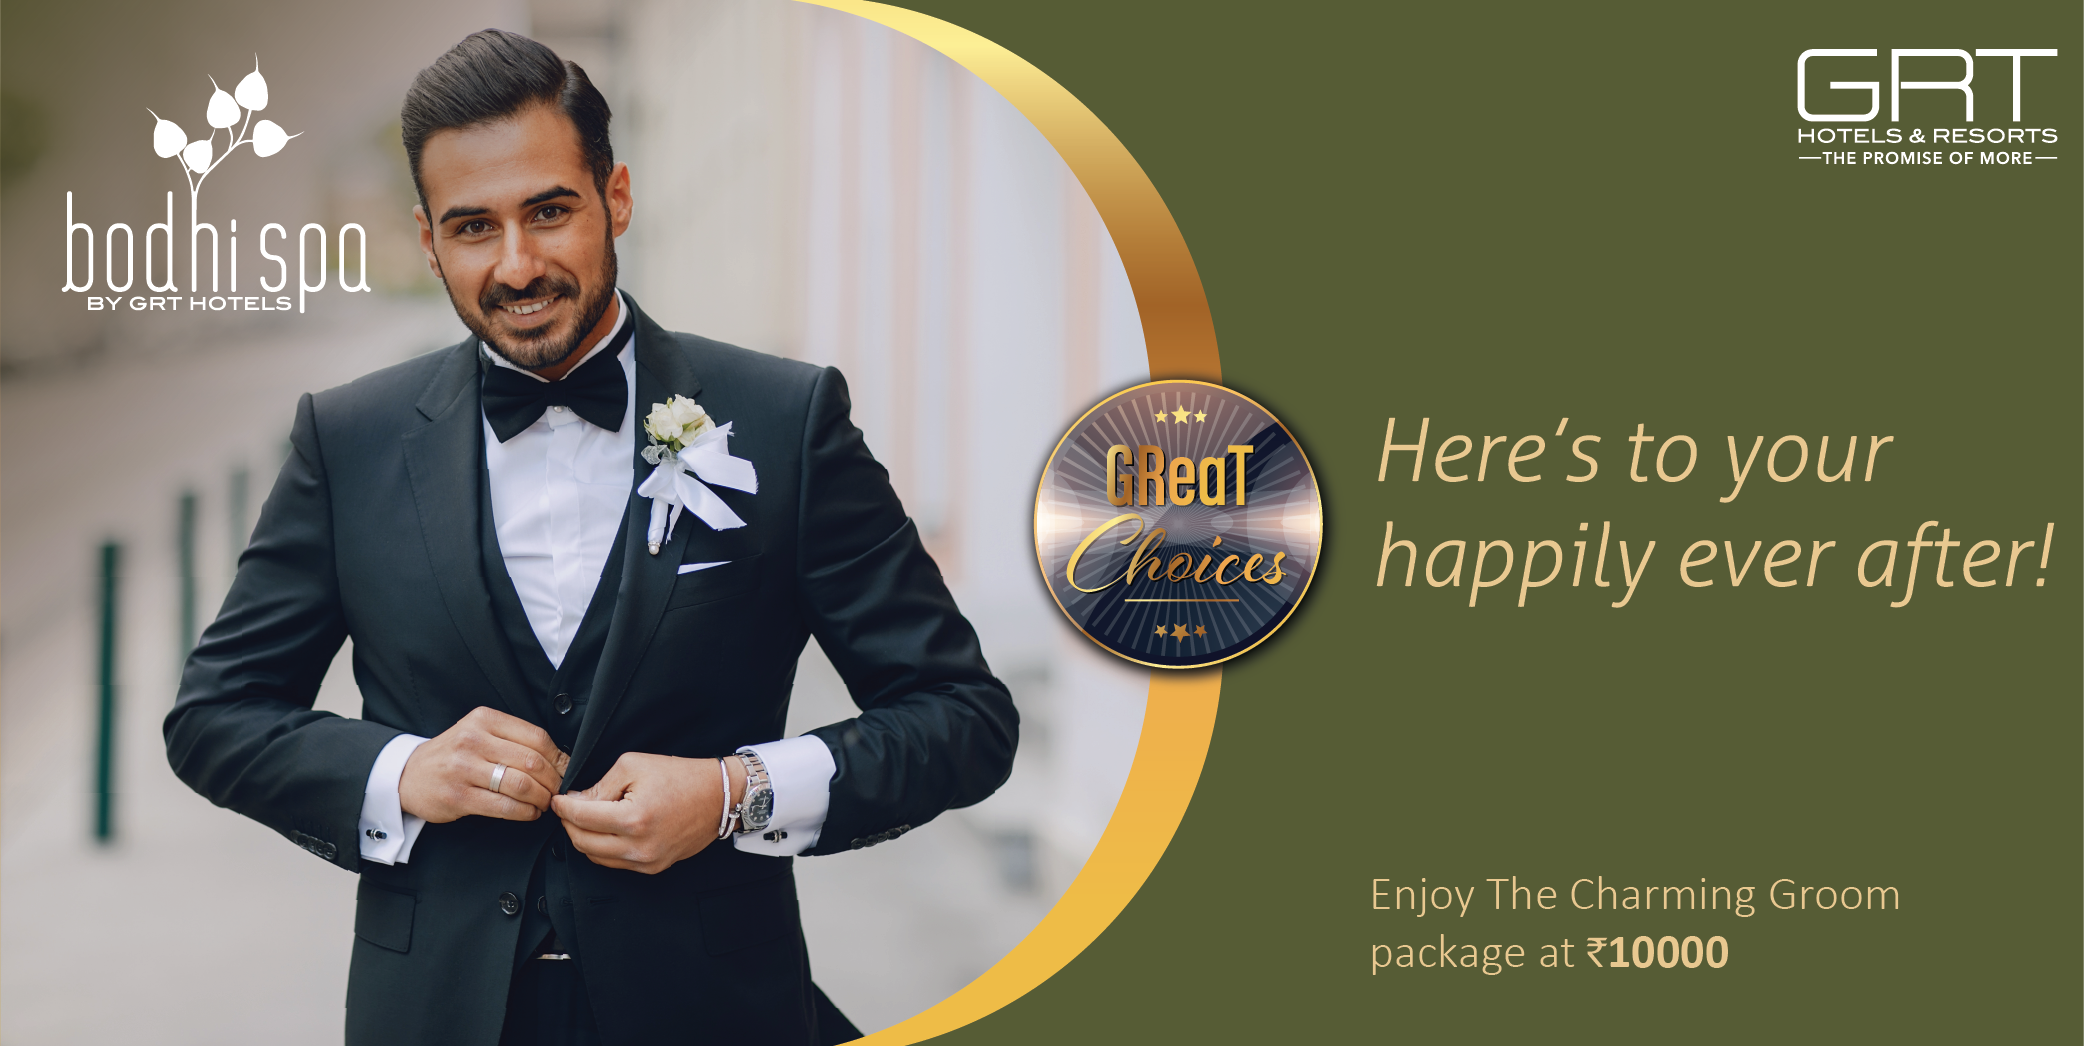 The Charming Groom Package